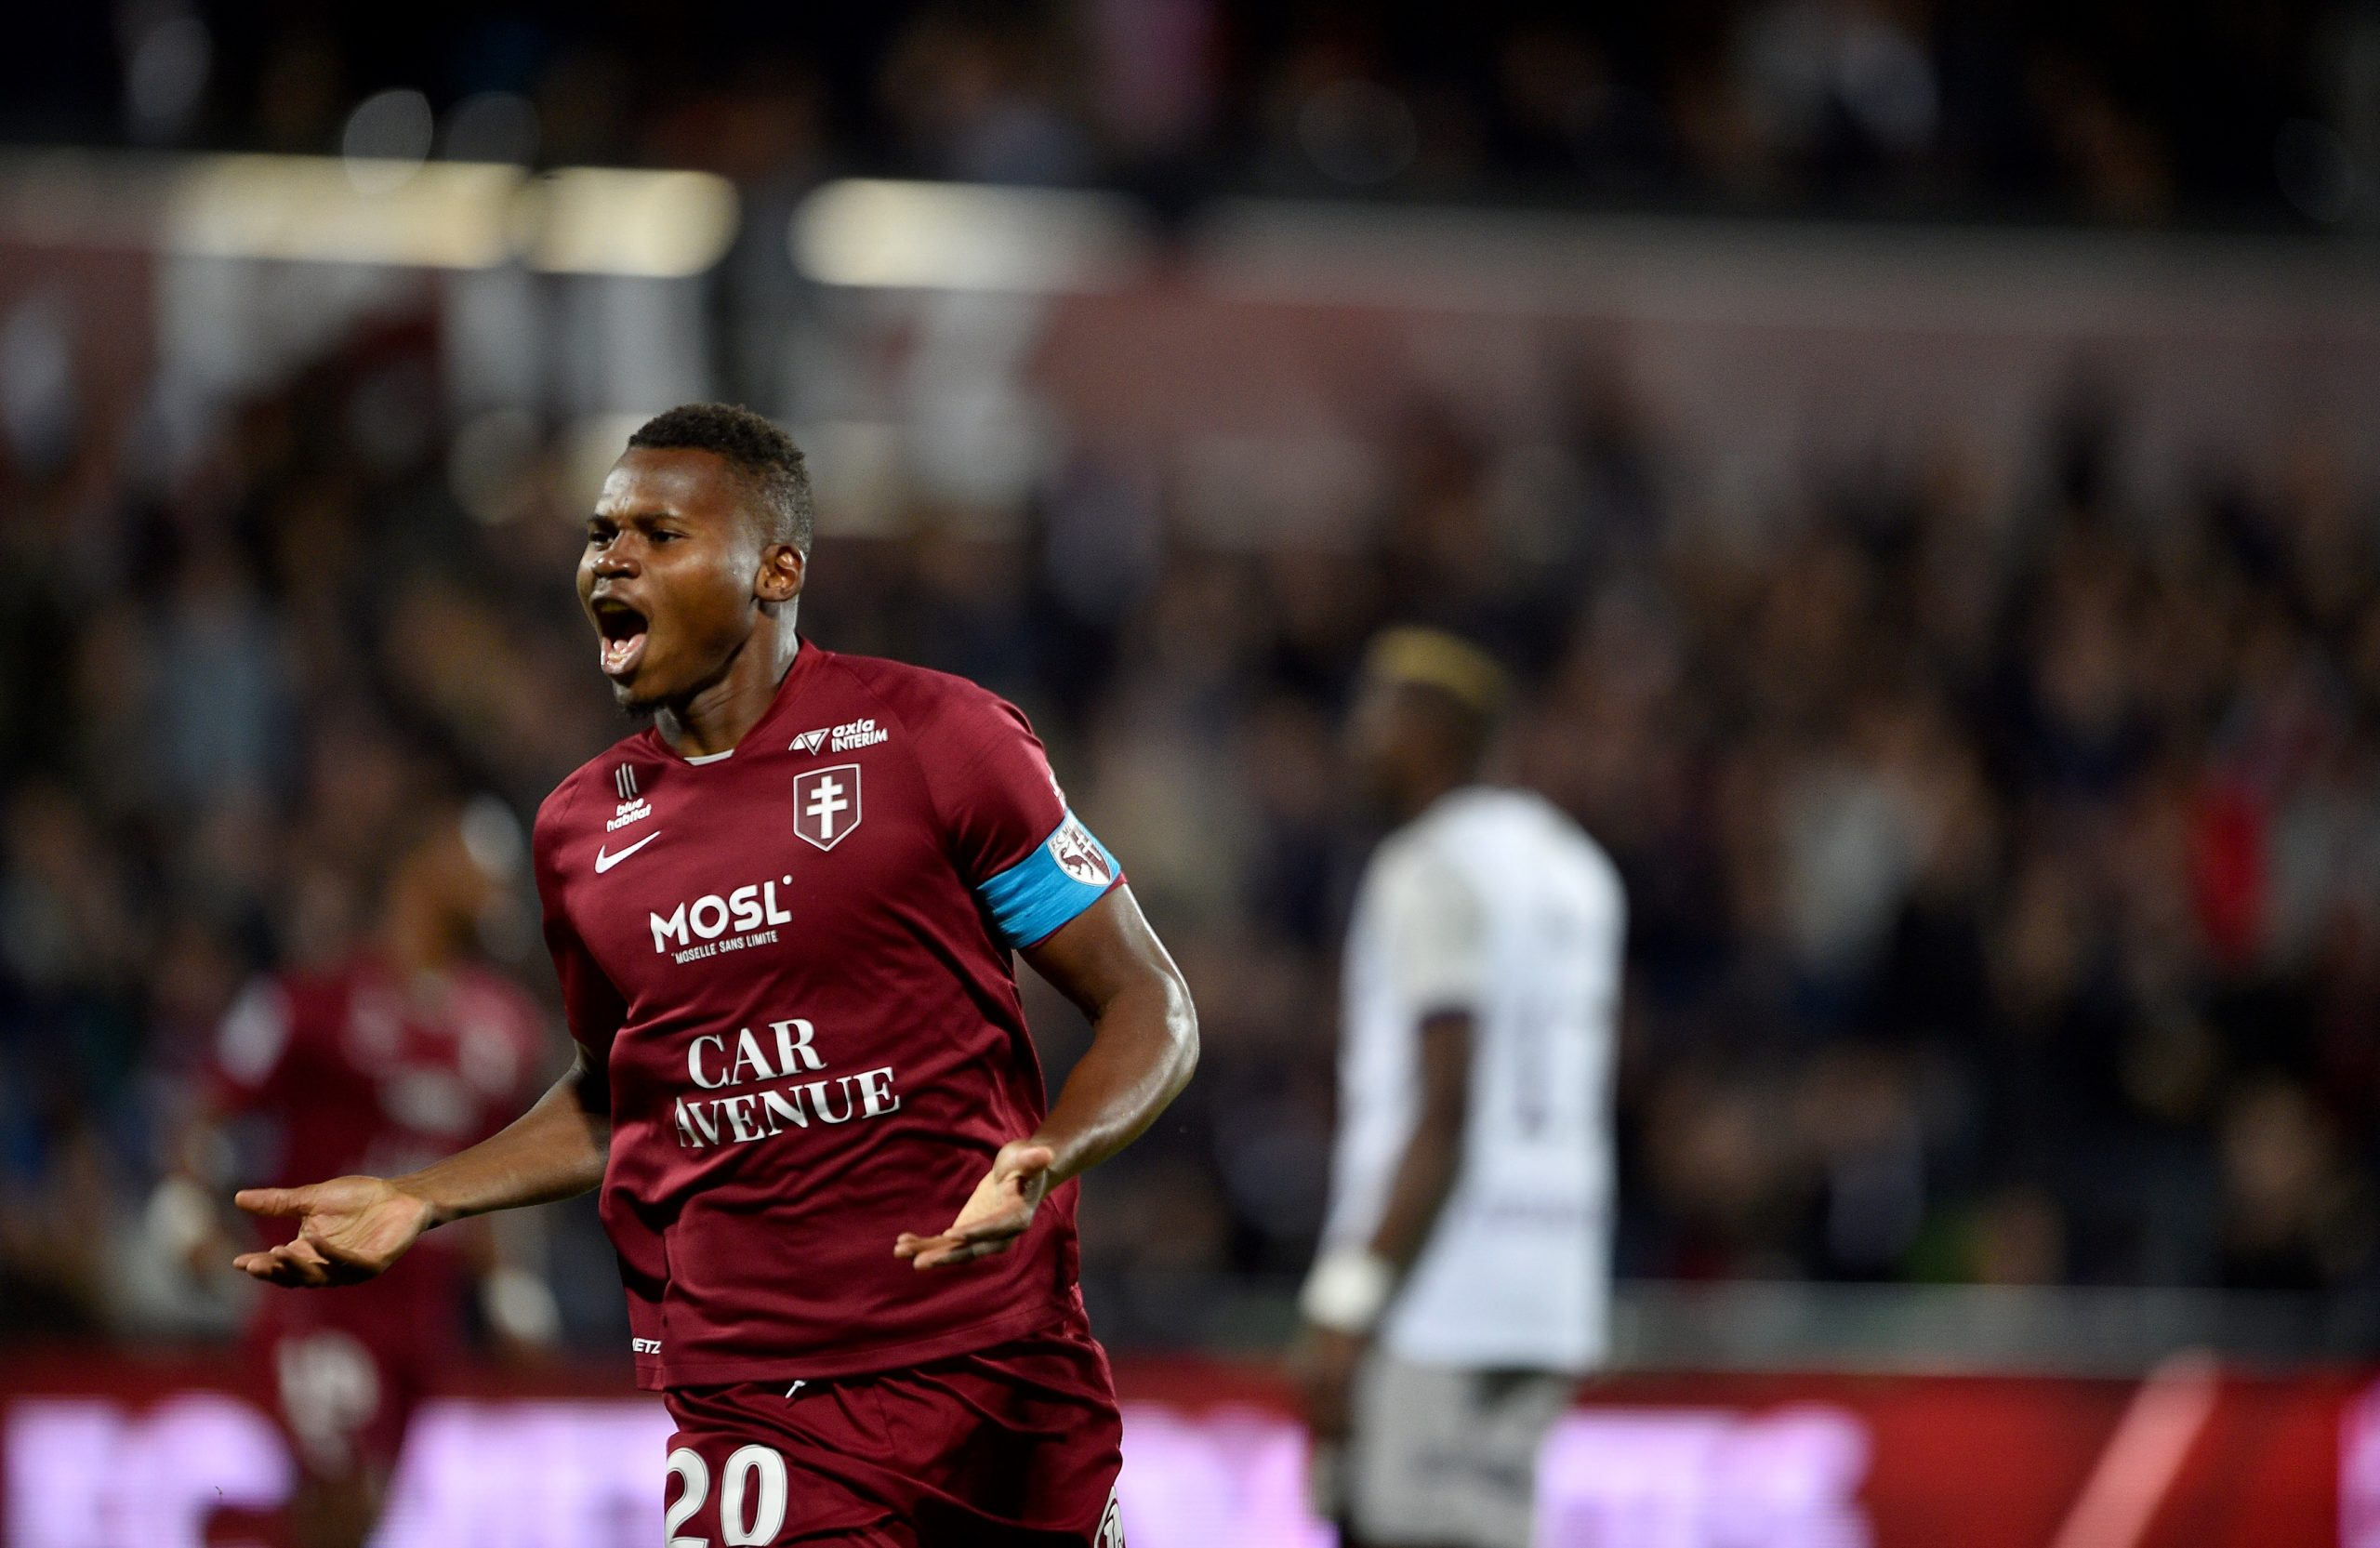 Habib Diallo helped Metz get promoted to the French top-flight (Getty Images)